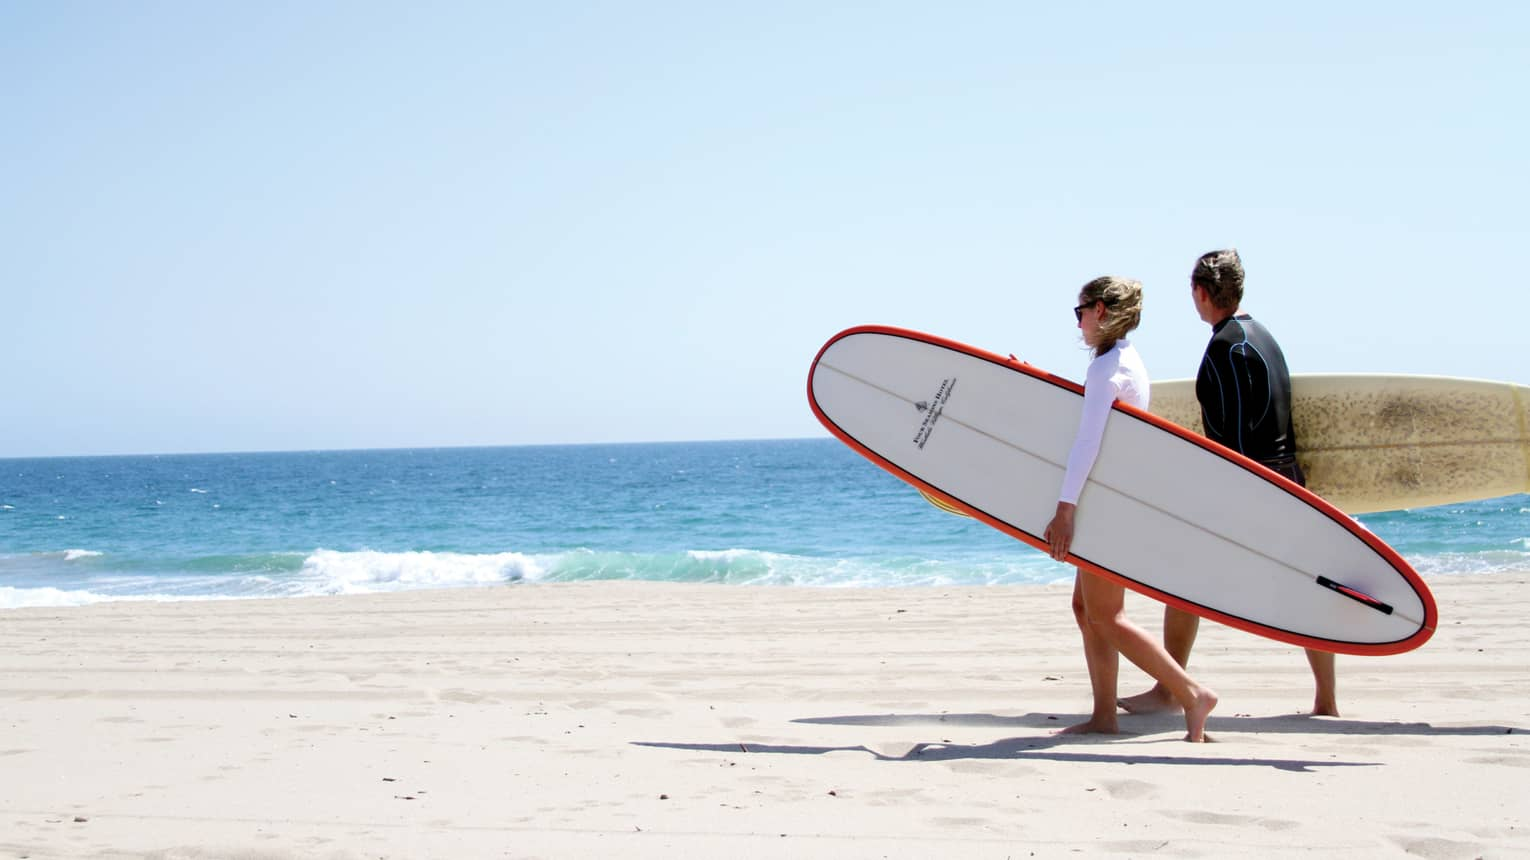 A couple on the beach holding surfboards under their arms.